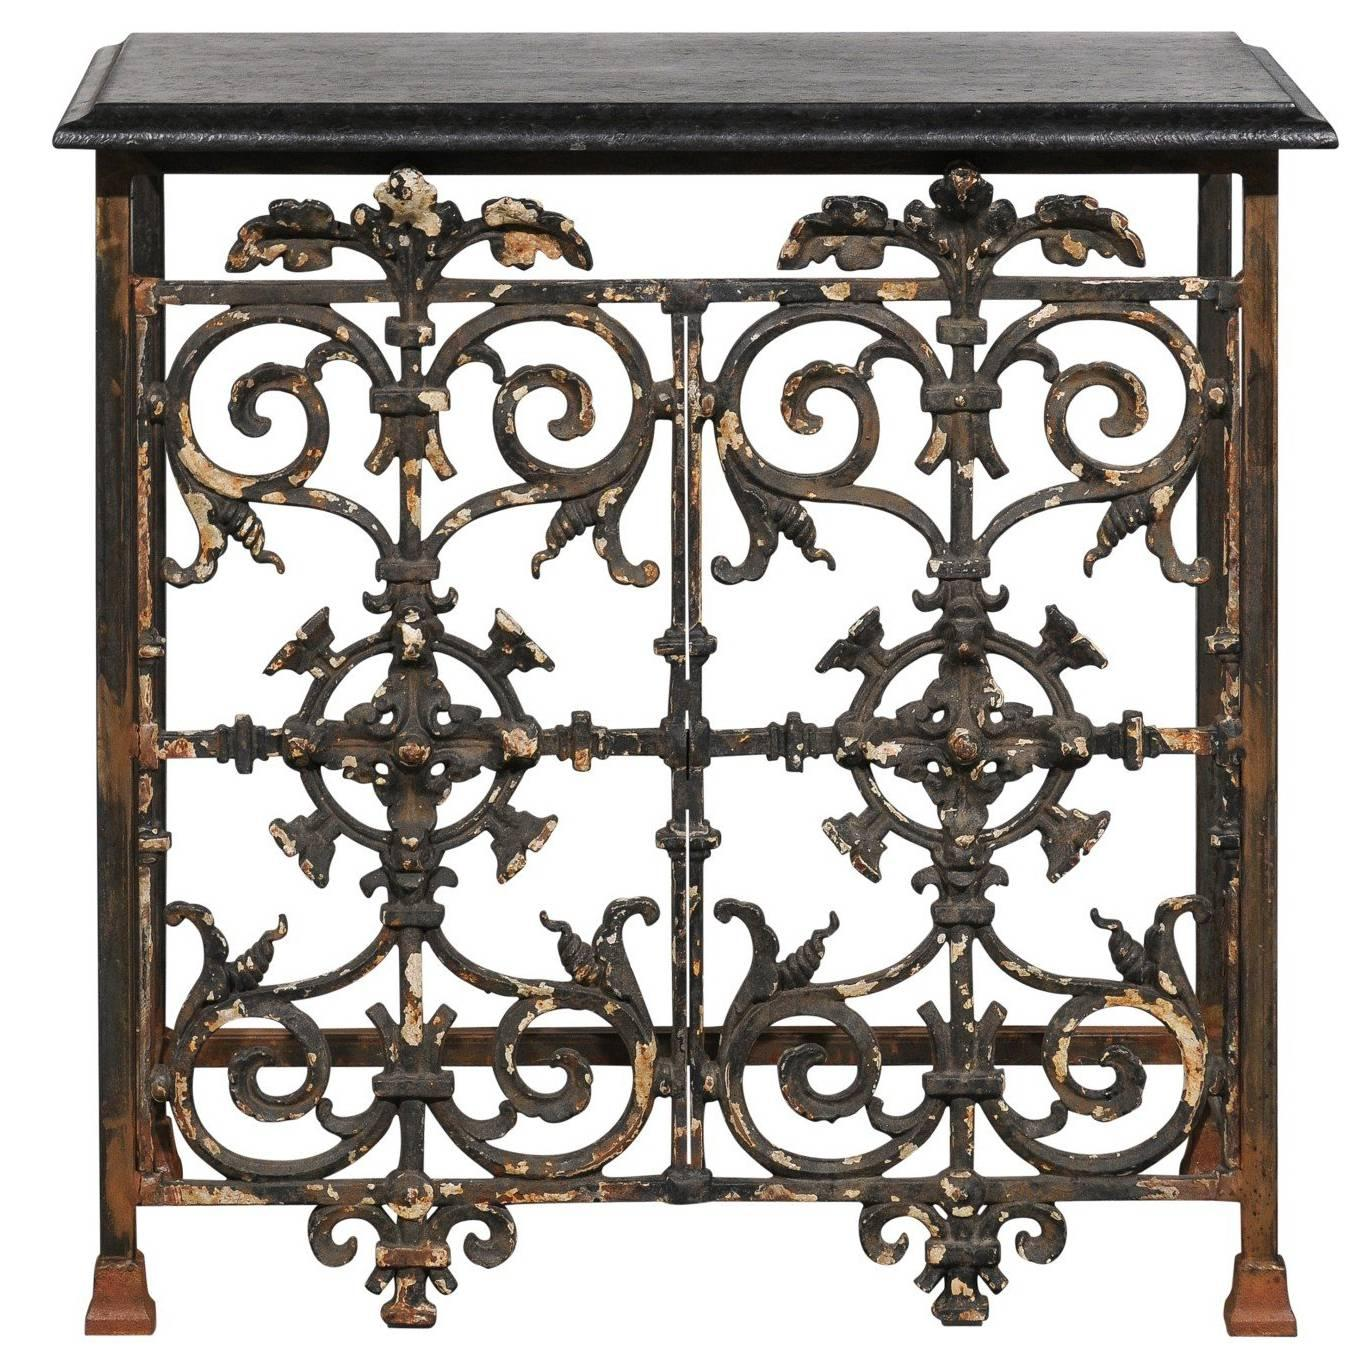 french wrought iron console table with black stone top from the mid20th century 1